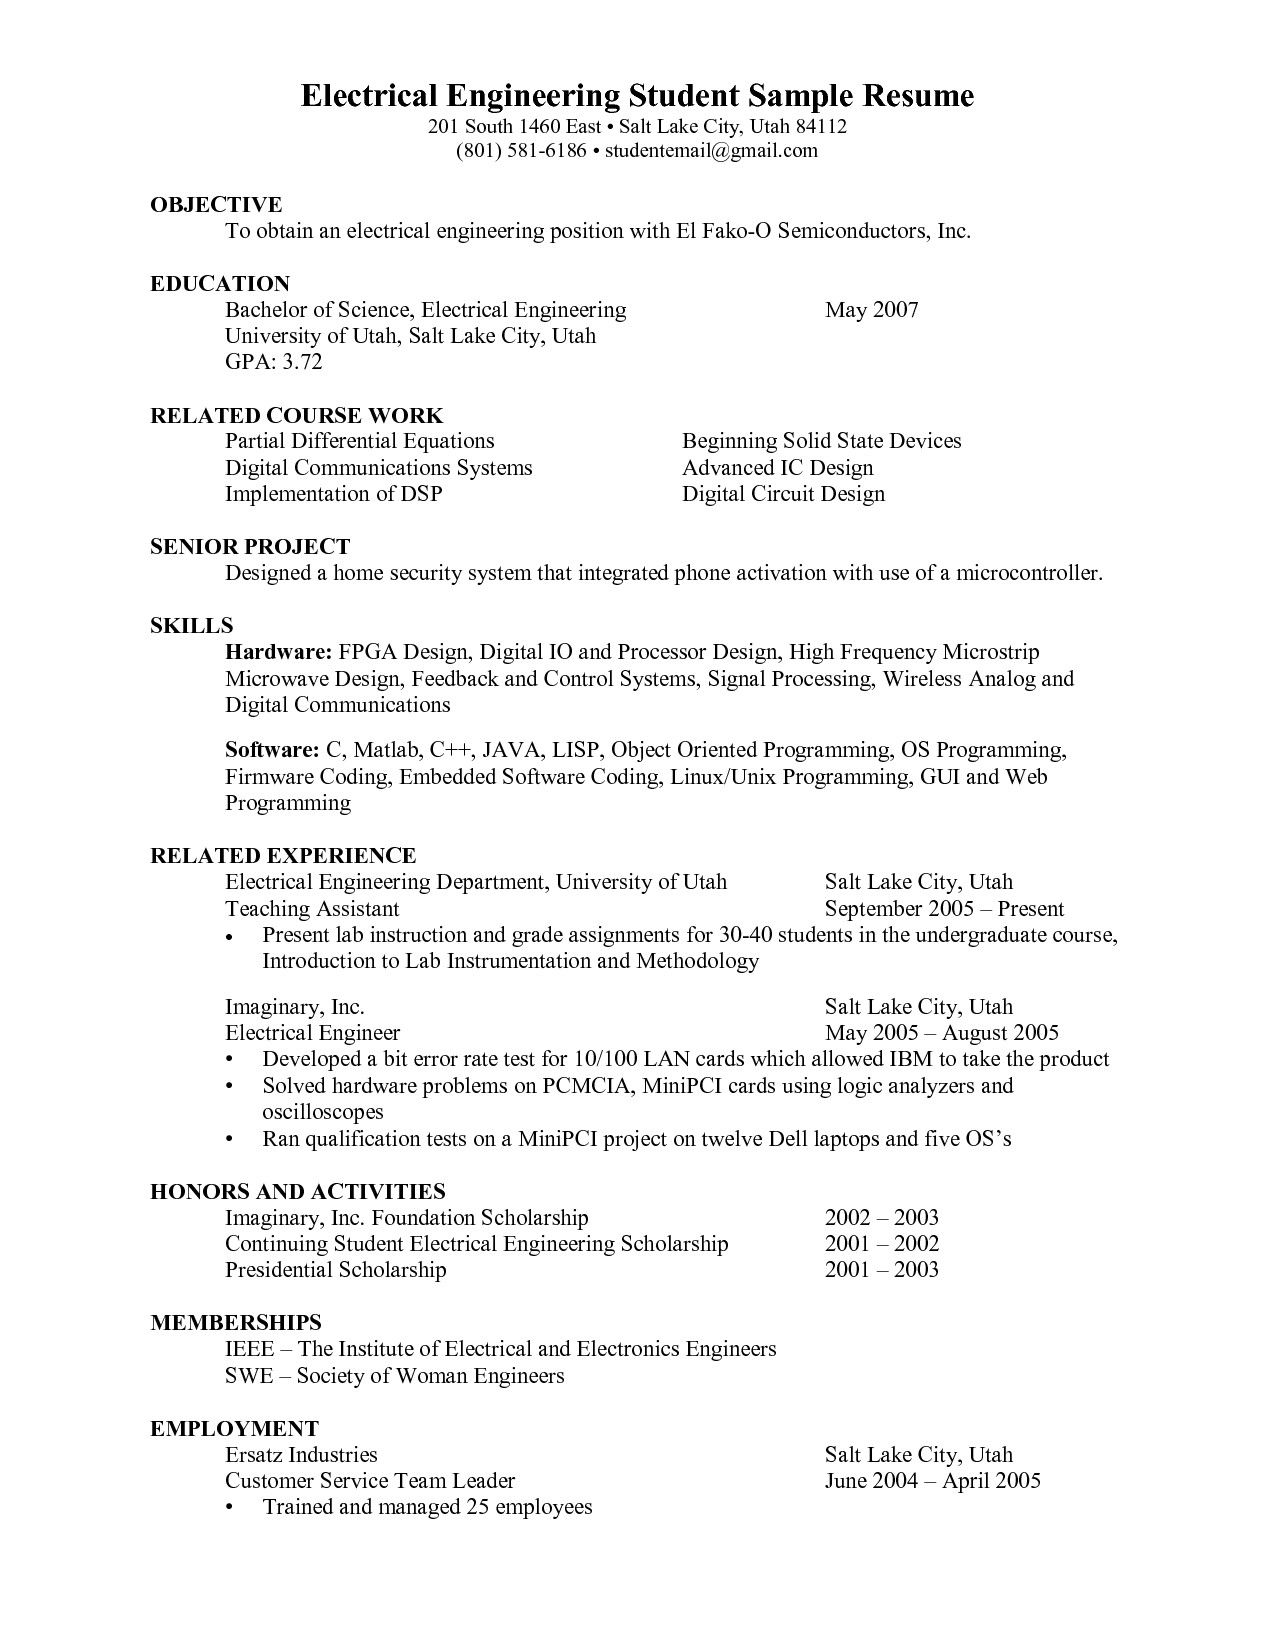 Resume Examples For Students Amazing Engineering Student Resume Google Search Of 28 Comfortable Resume Exam Engineering Resume Student Resume Internship Resume